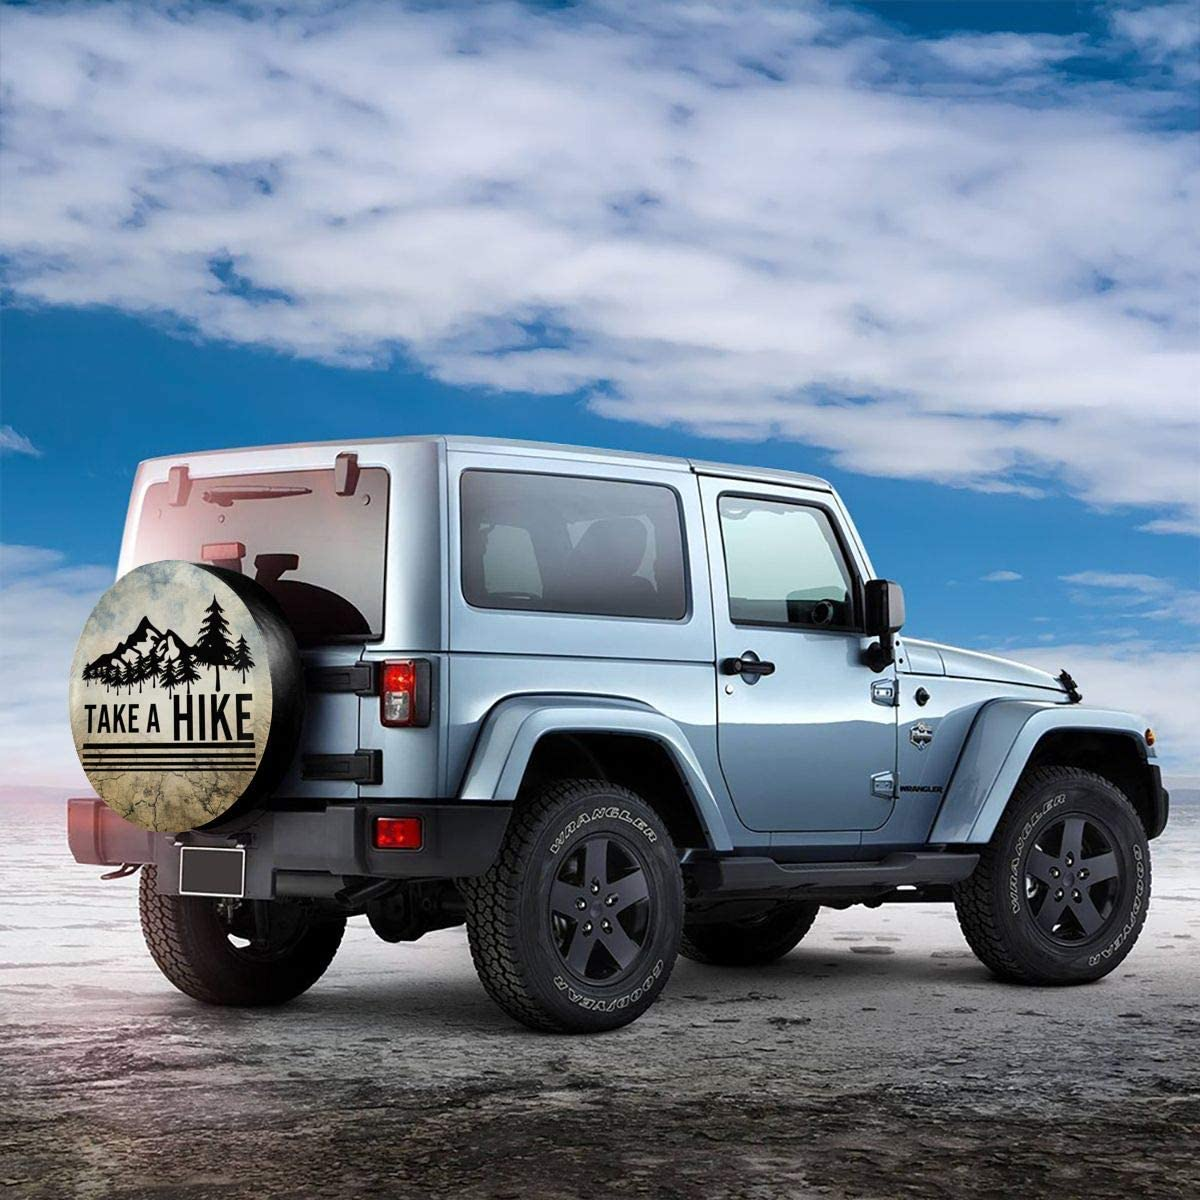 Take A Hike Hiking Hiker Spare Tire Cover Back Off Wheel Covers for Jeep Trailer RV SUV Truck Travel Trailer Accessories 14 15 16 17 Kejbr Spare Wheel Cover